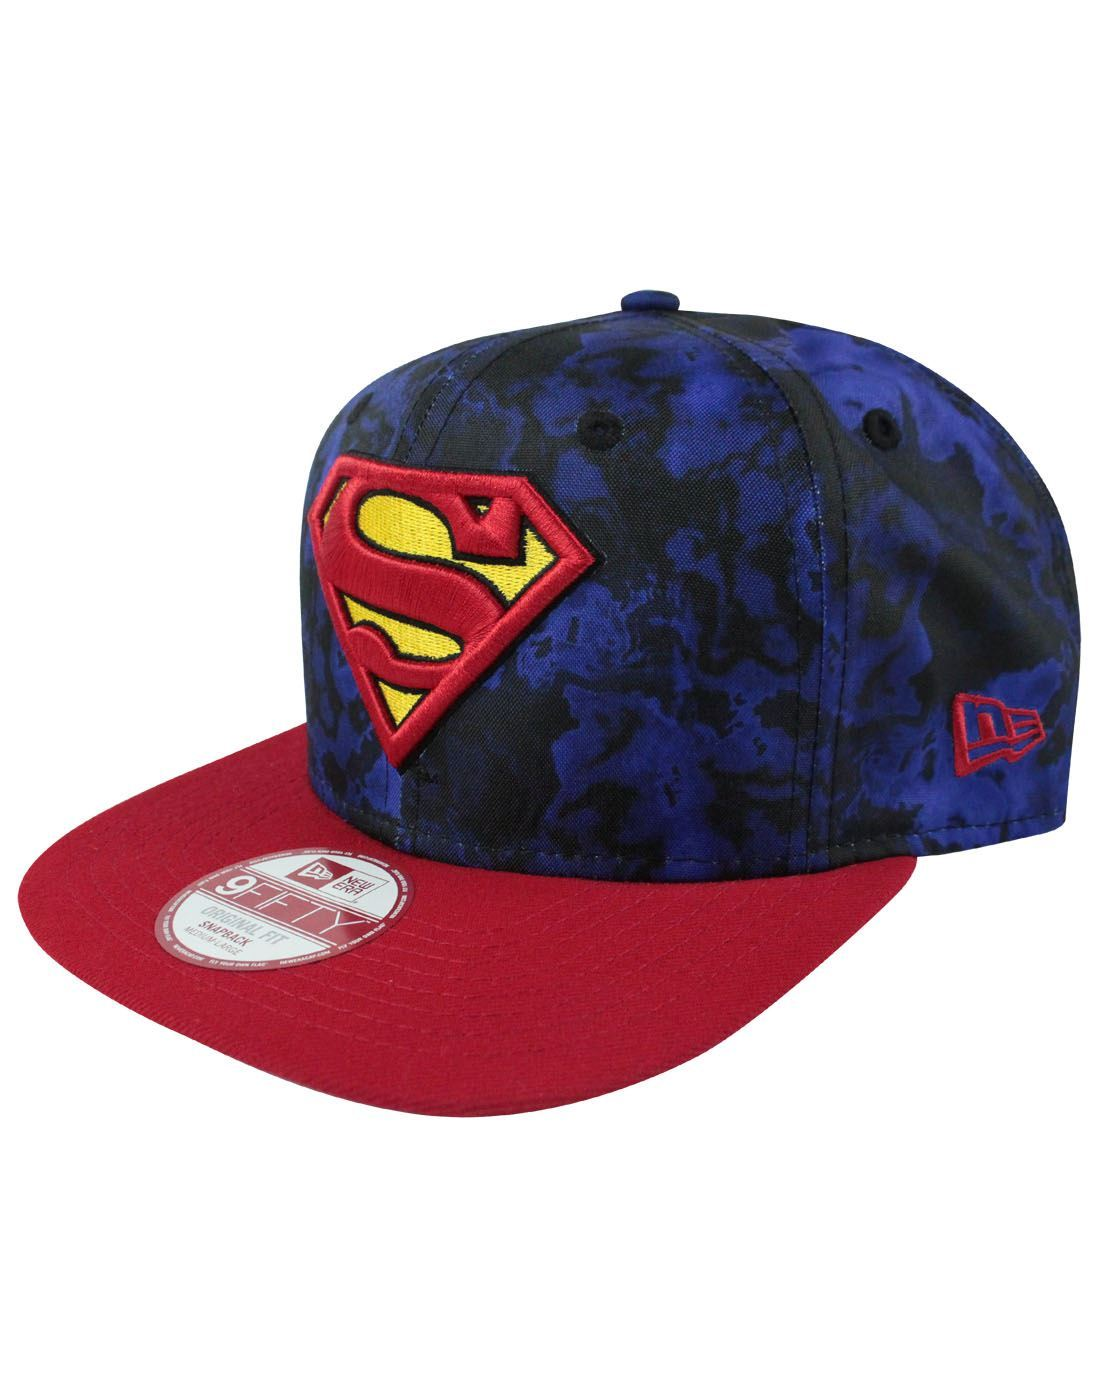 4ac26b1b58277 norway new era 9fifty hero slick superman snapback cap f4b69 45c20